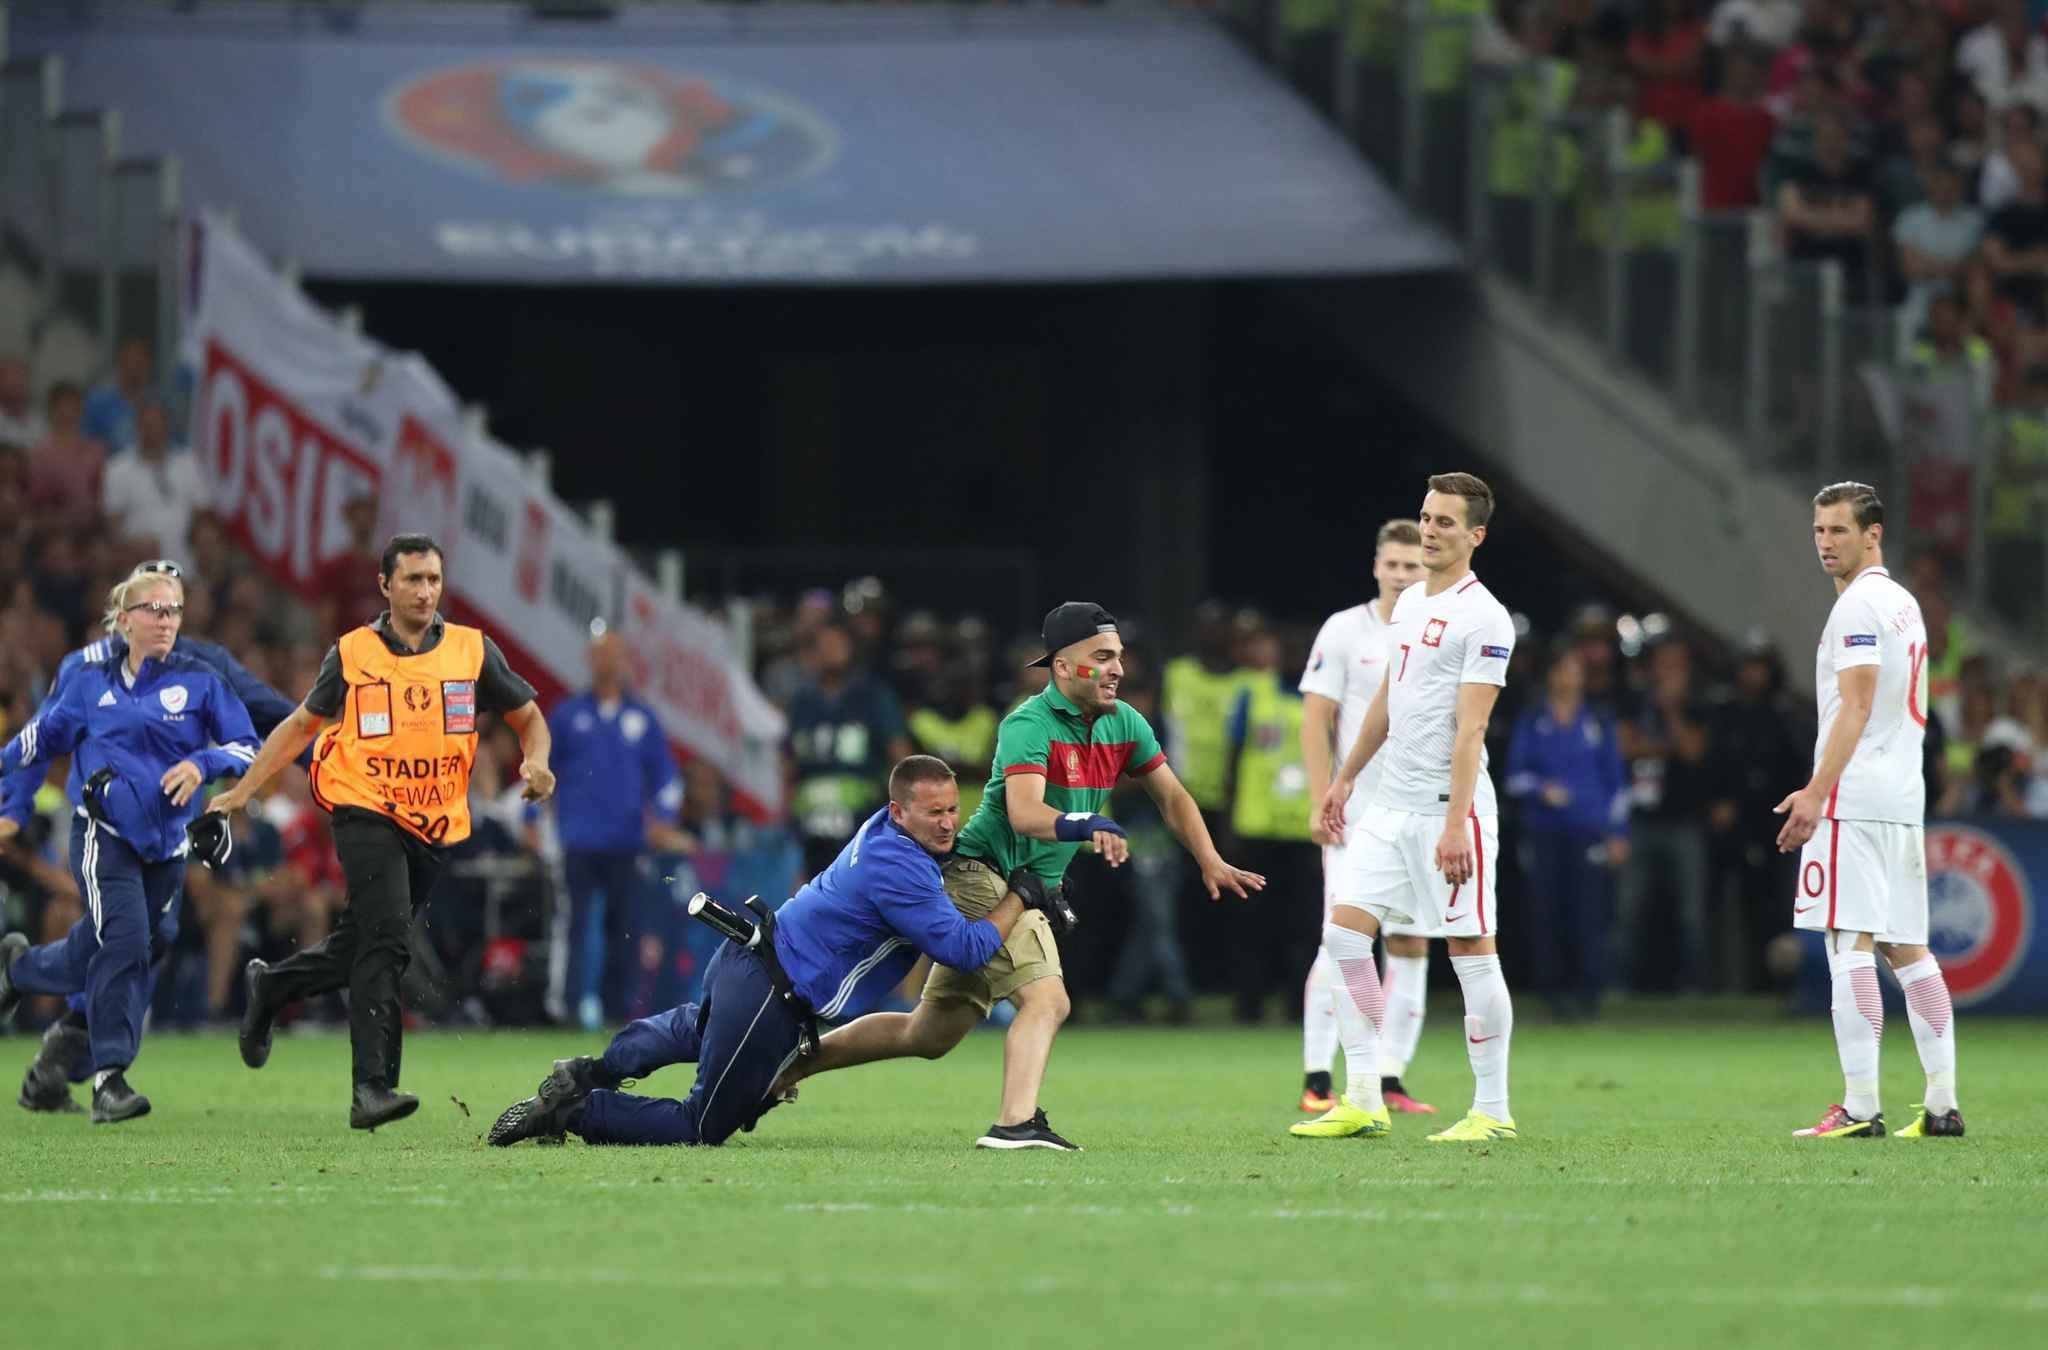 (160701) -- MARSEILLE, July 1, 2016 (Xinhua) -- A fan of Portugal invades the pitch during the Euro 2016 quarterfinal match between Portugal and Poland in Marseille, France, June 30, 2016. (Xinhua/Bai Xuefei)//CHINENOUVELLE_074639/Credit:XINHUA/SIPA/1607010756